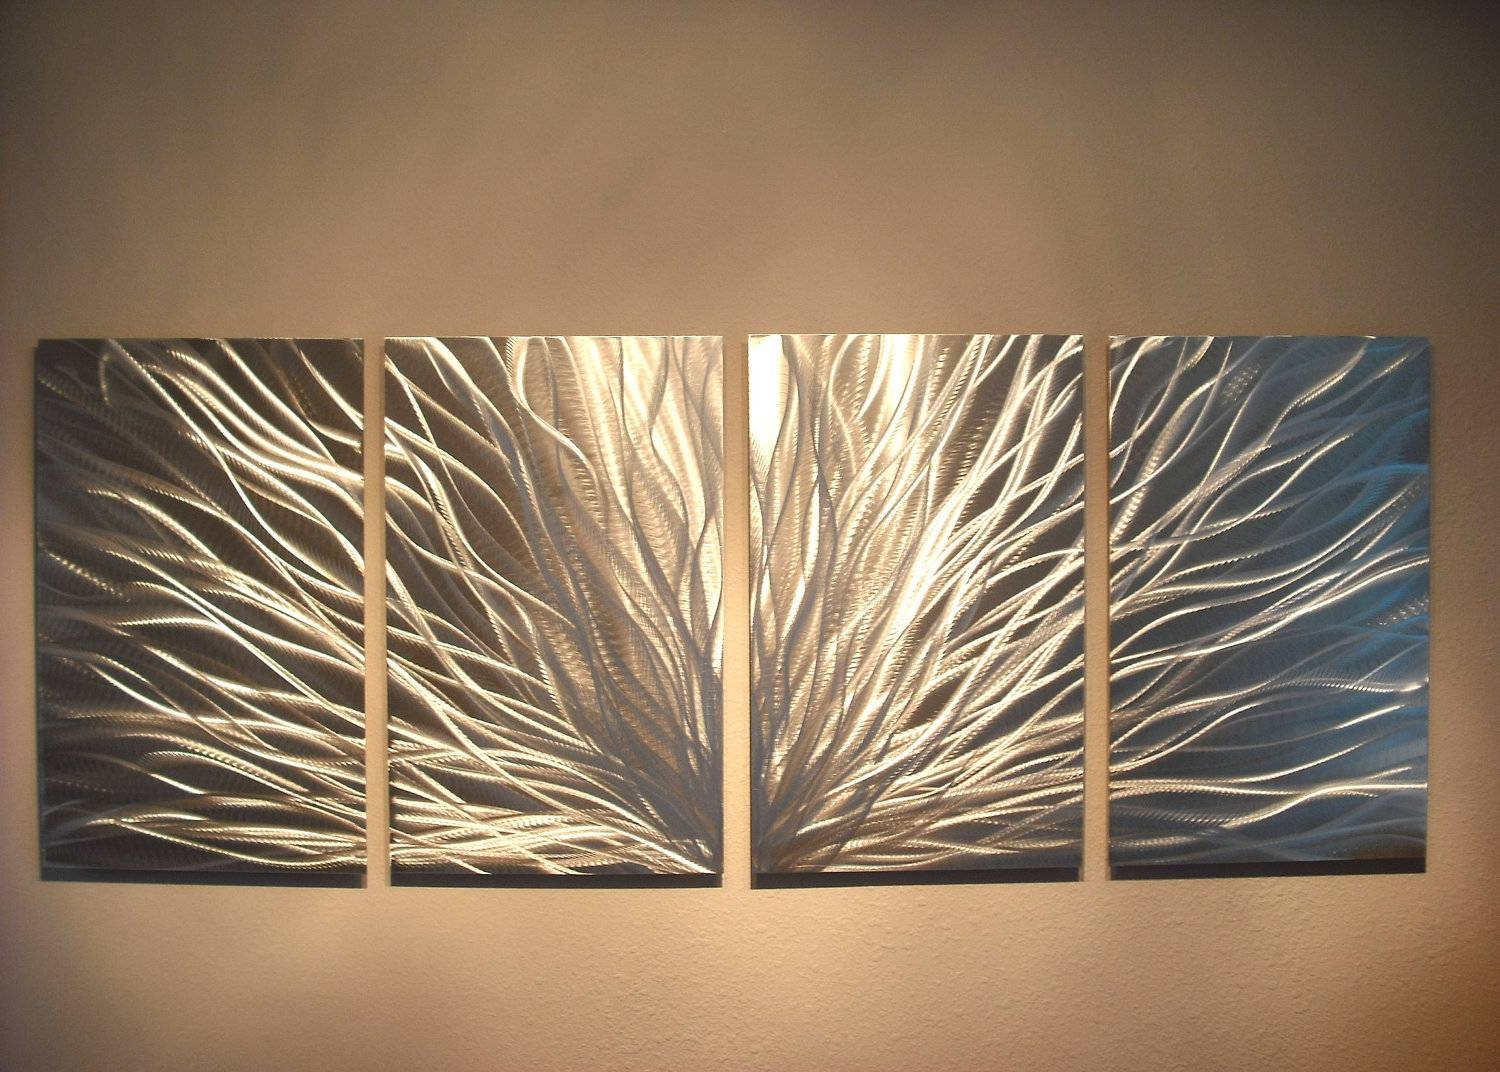 Radiance – Abstract Metal Wall Art Contemporary Modern Decor Pertaining To 2018 Large Metal Art (Gallery 5 of 20)